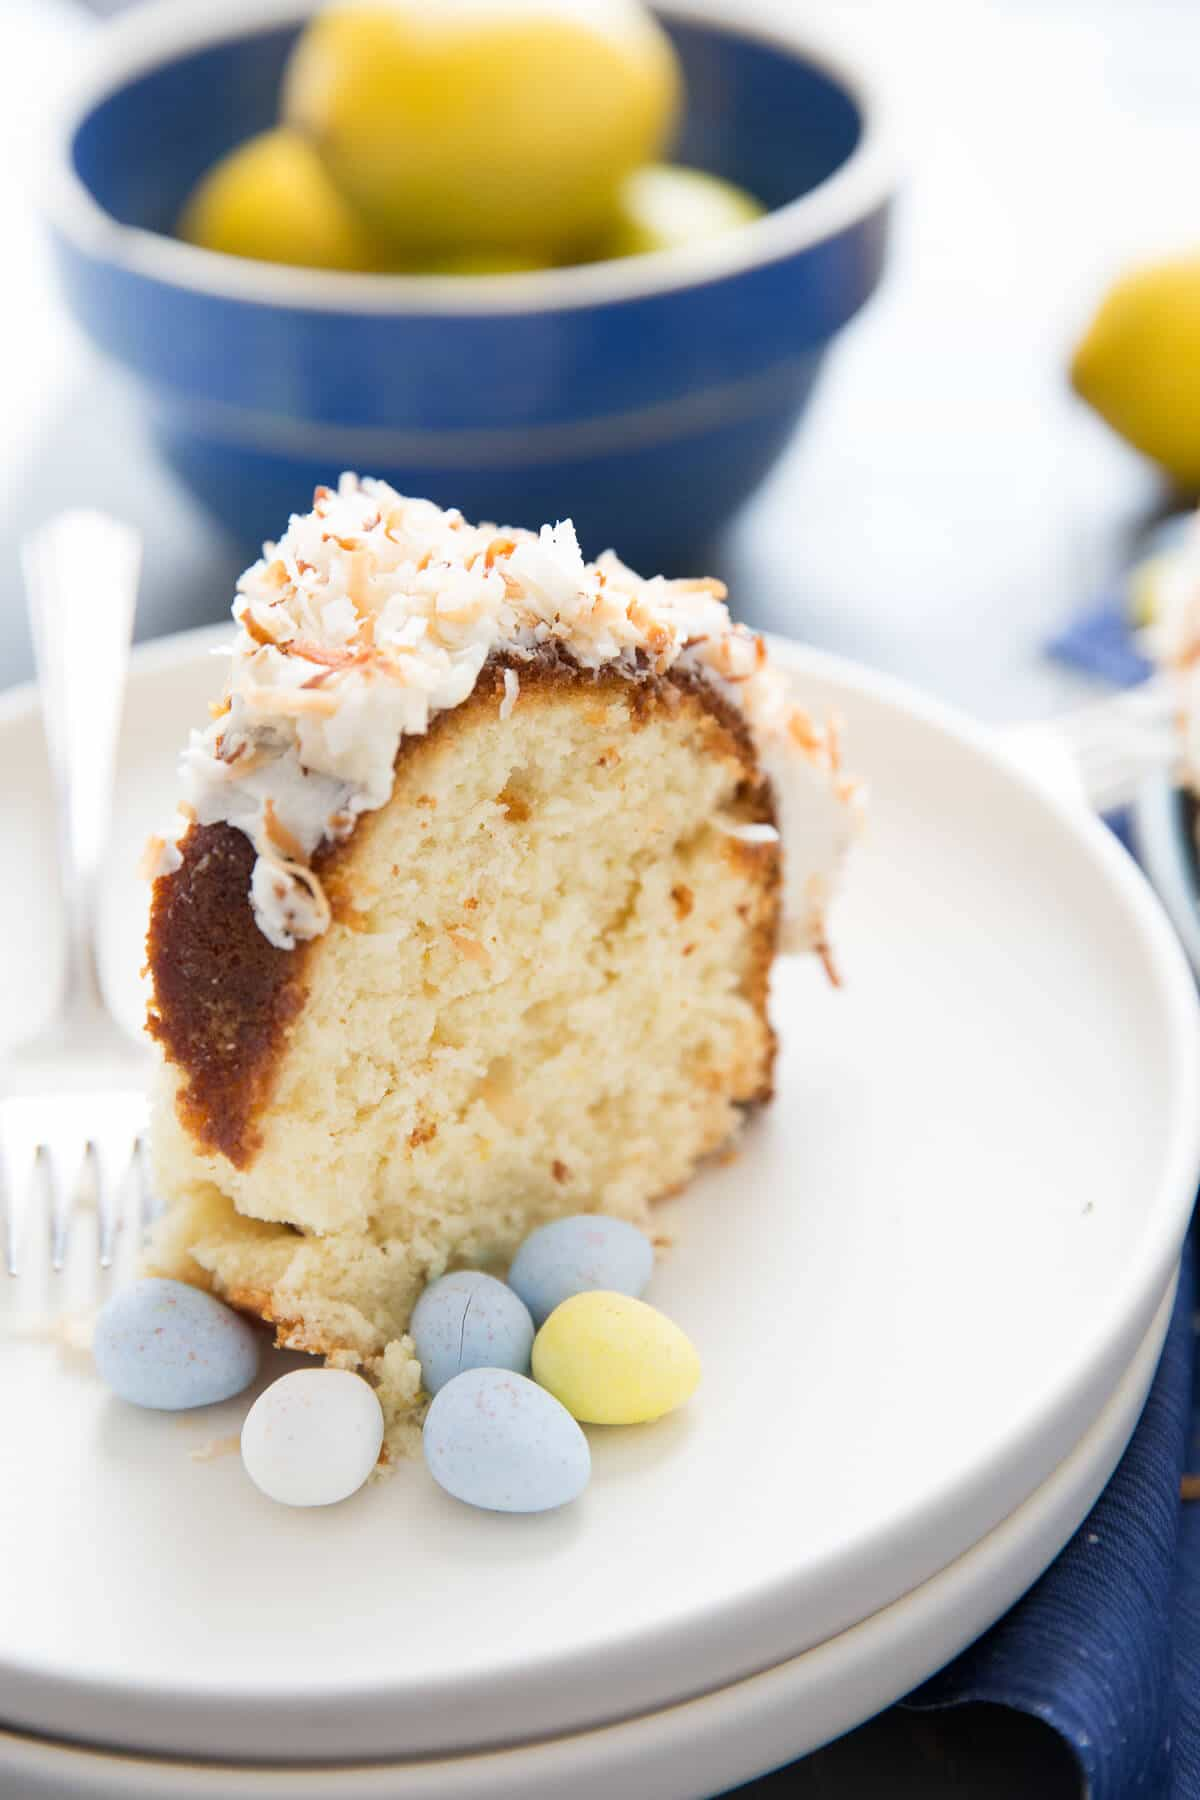 """Isn't a """"bird's nest"""" the perfect Easter lemon bundt cake? With it's lemon flavored cake, it's like spring from the inside out!"""